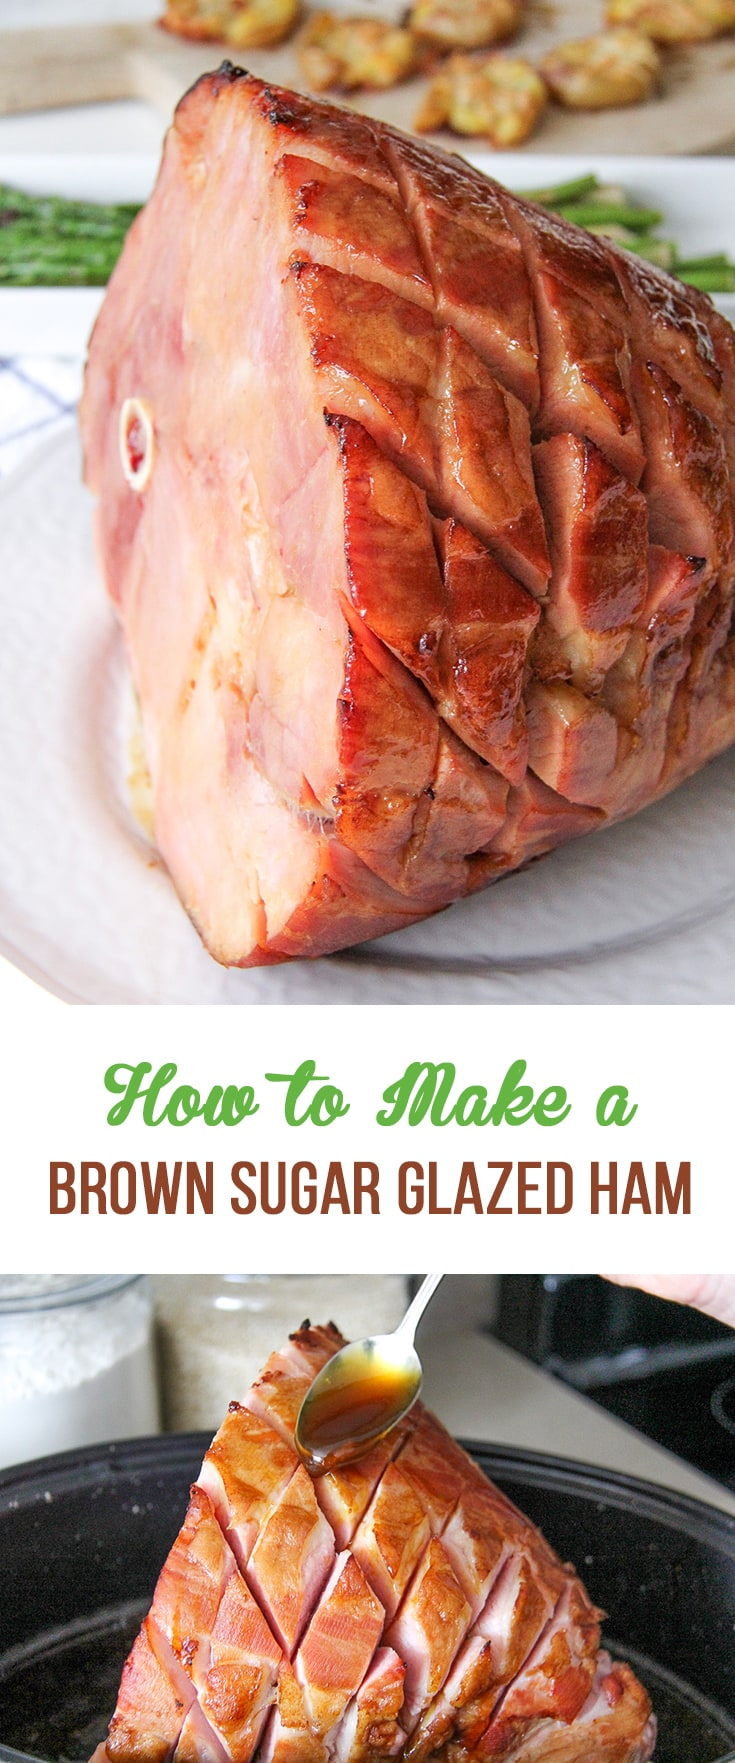 how to cook a fresh ham with brown sugar